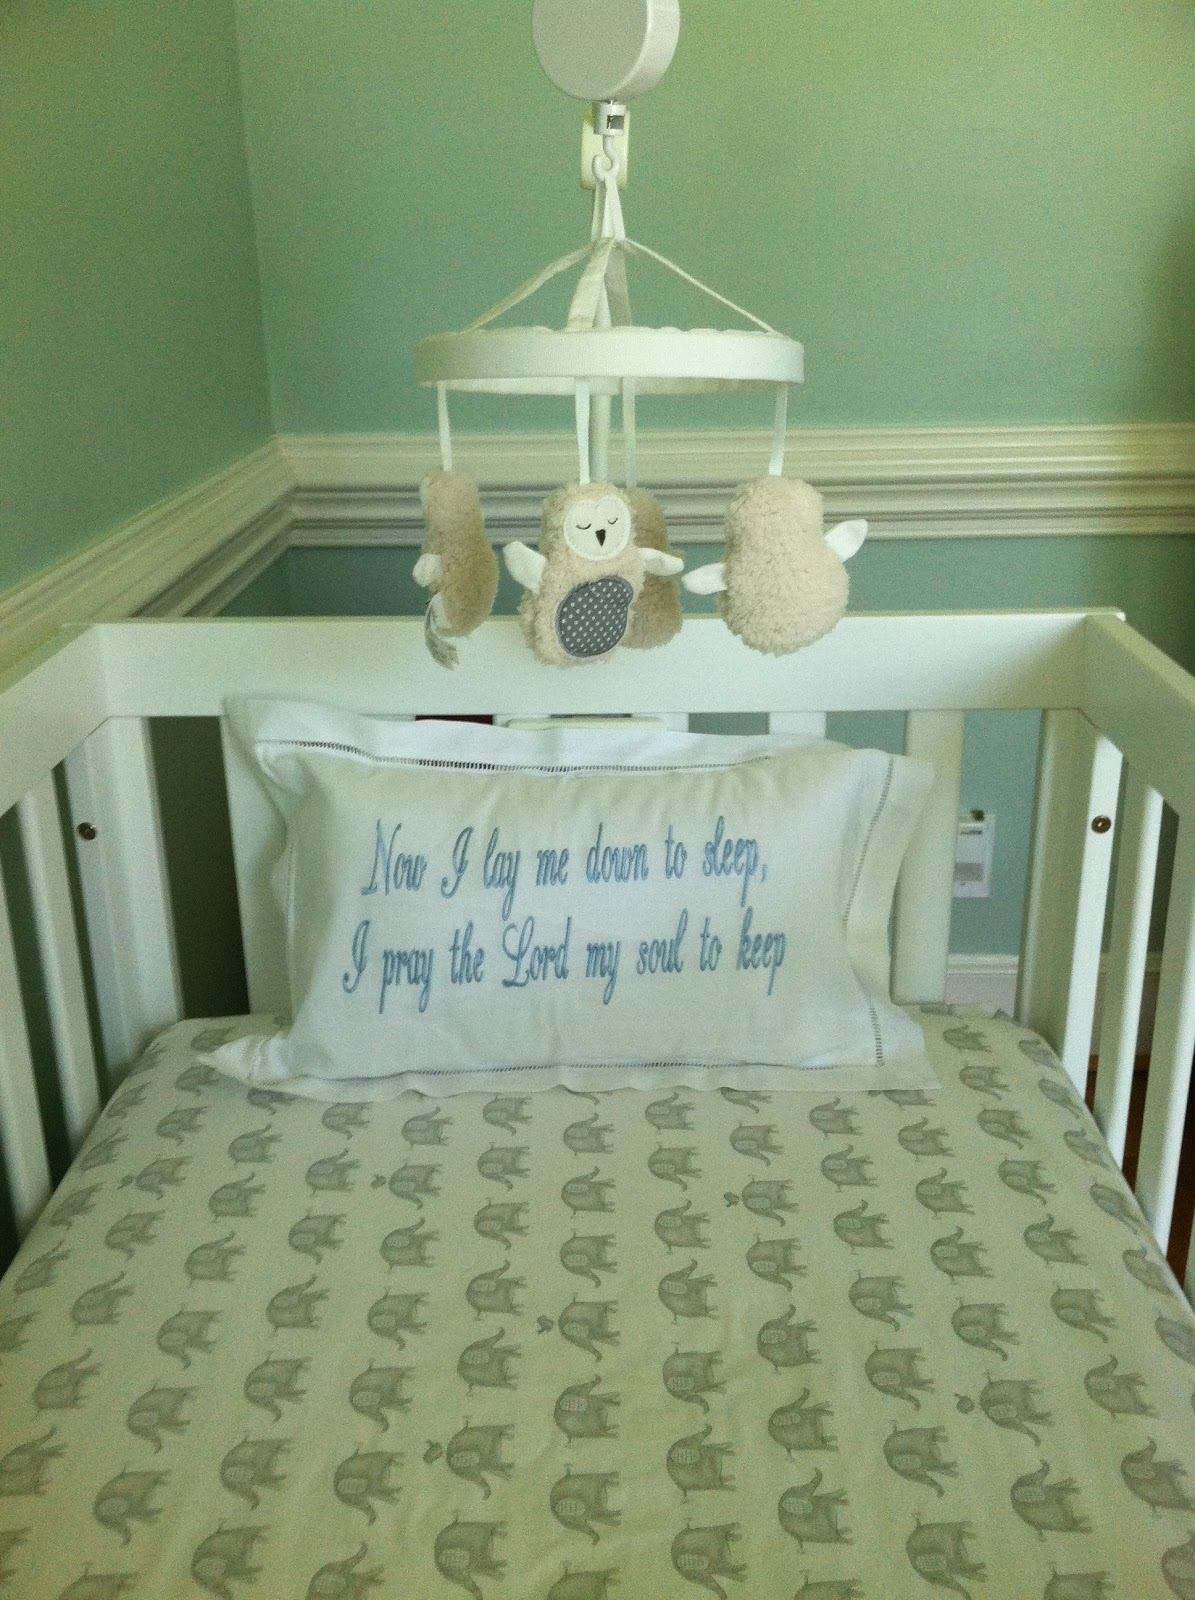 Designer Bags And Dirty Diapers Finley S Nursery